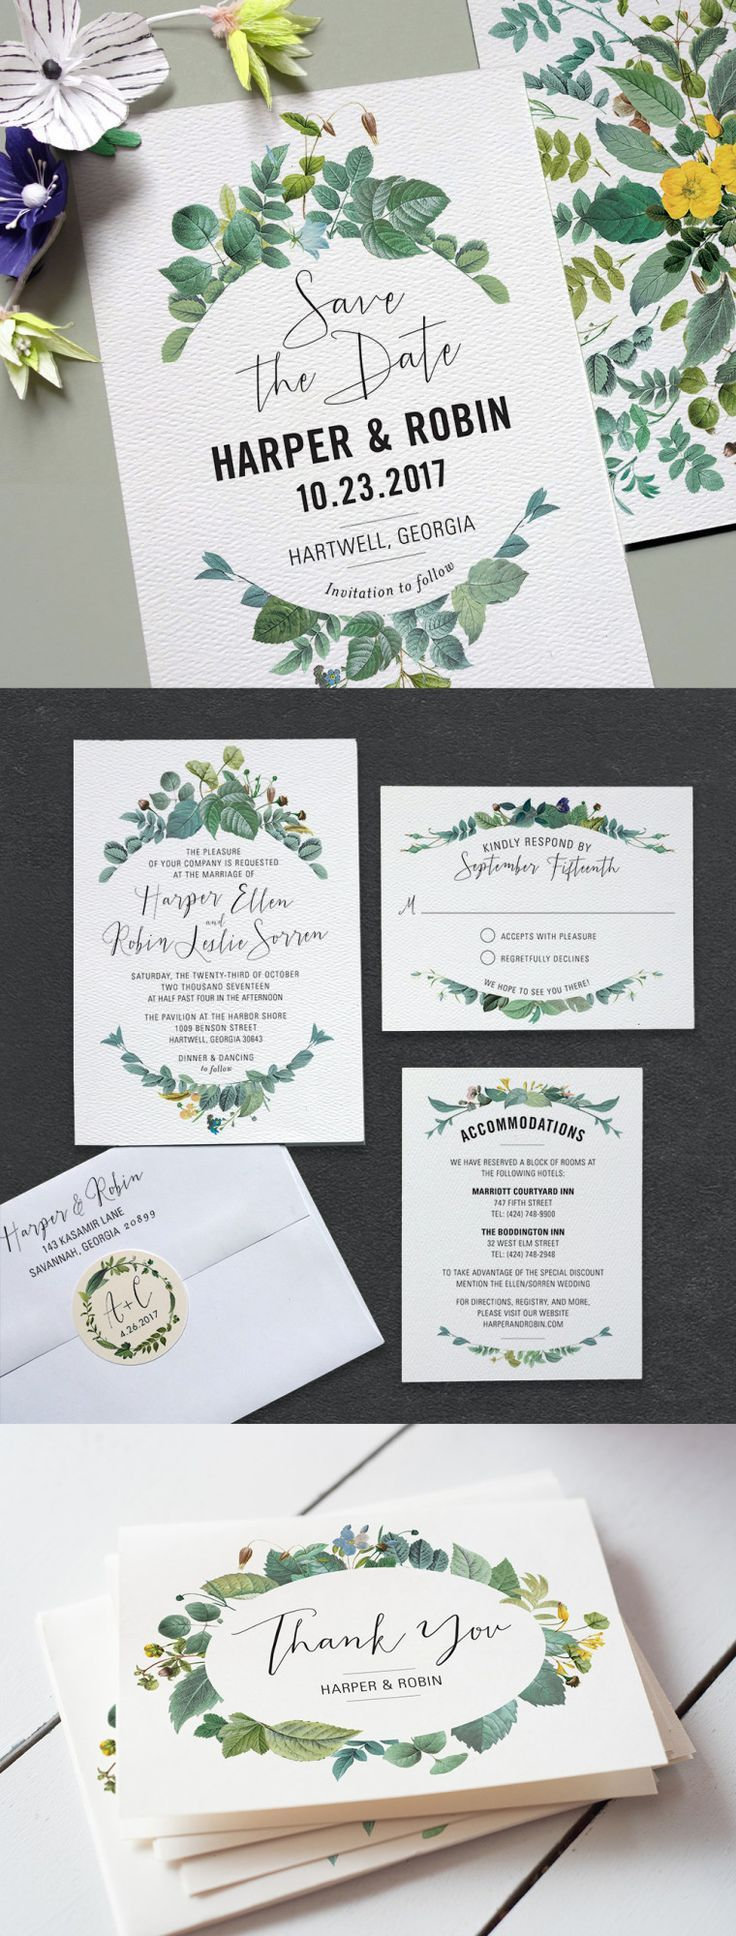 Best 25 Printable wedding invitations ideas – Printable Wedding Invitation Cards